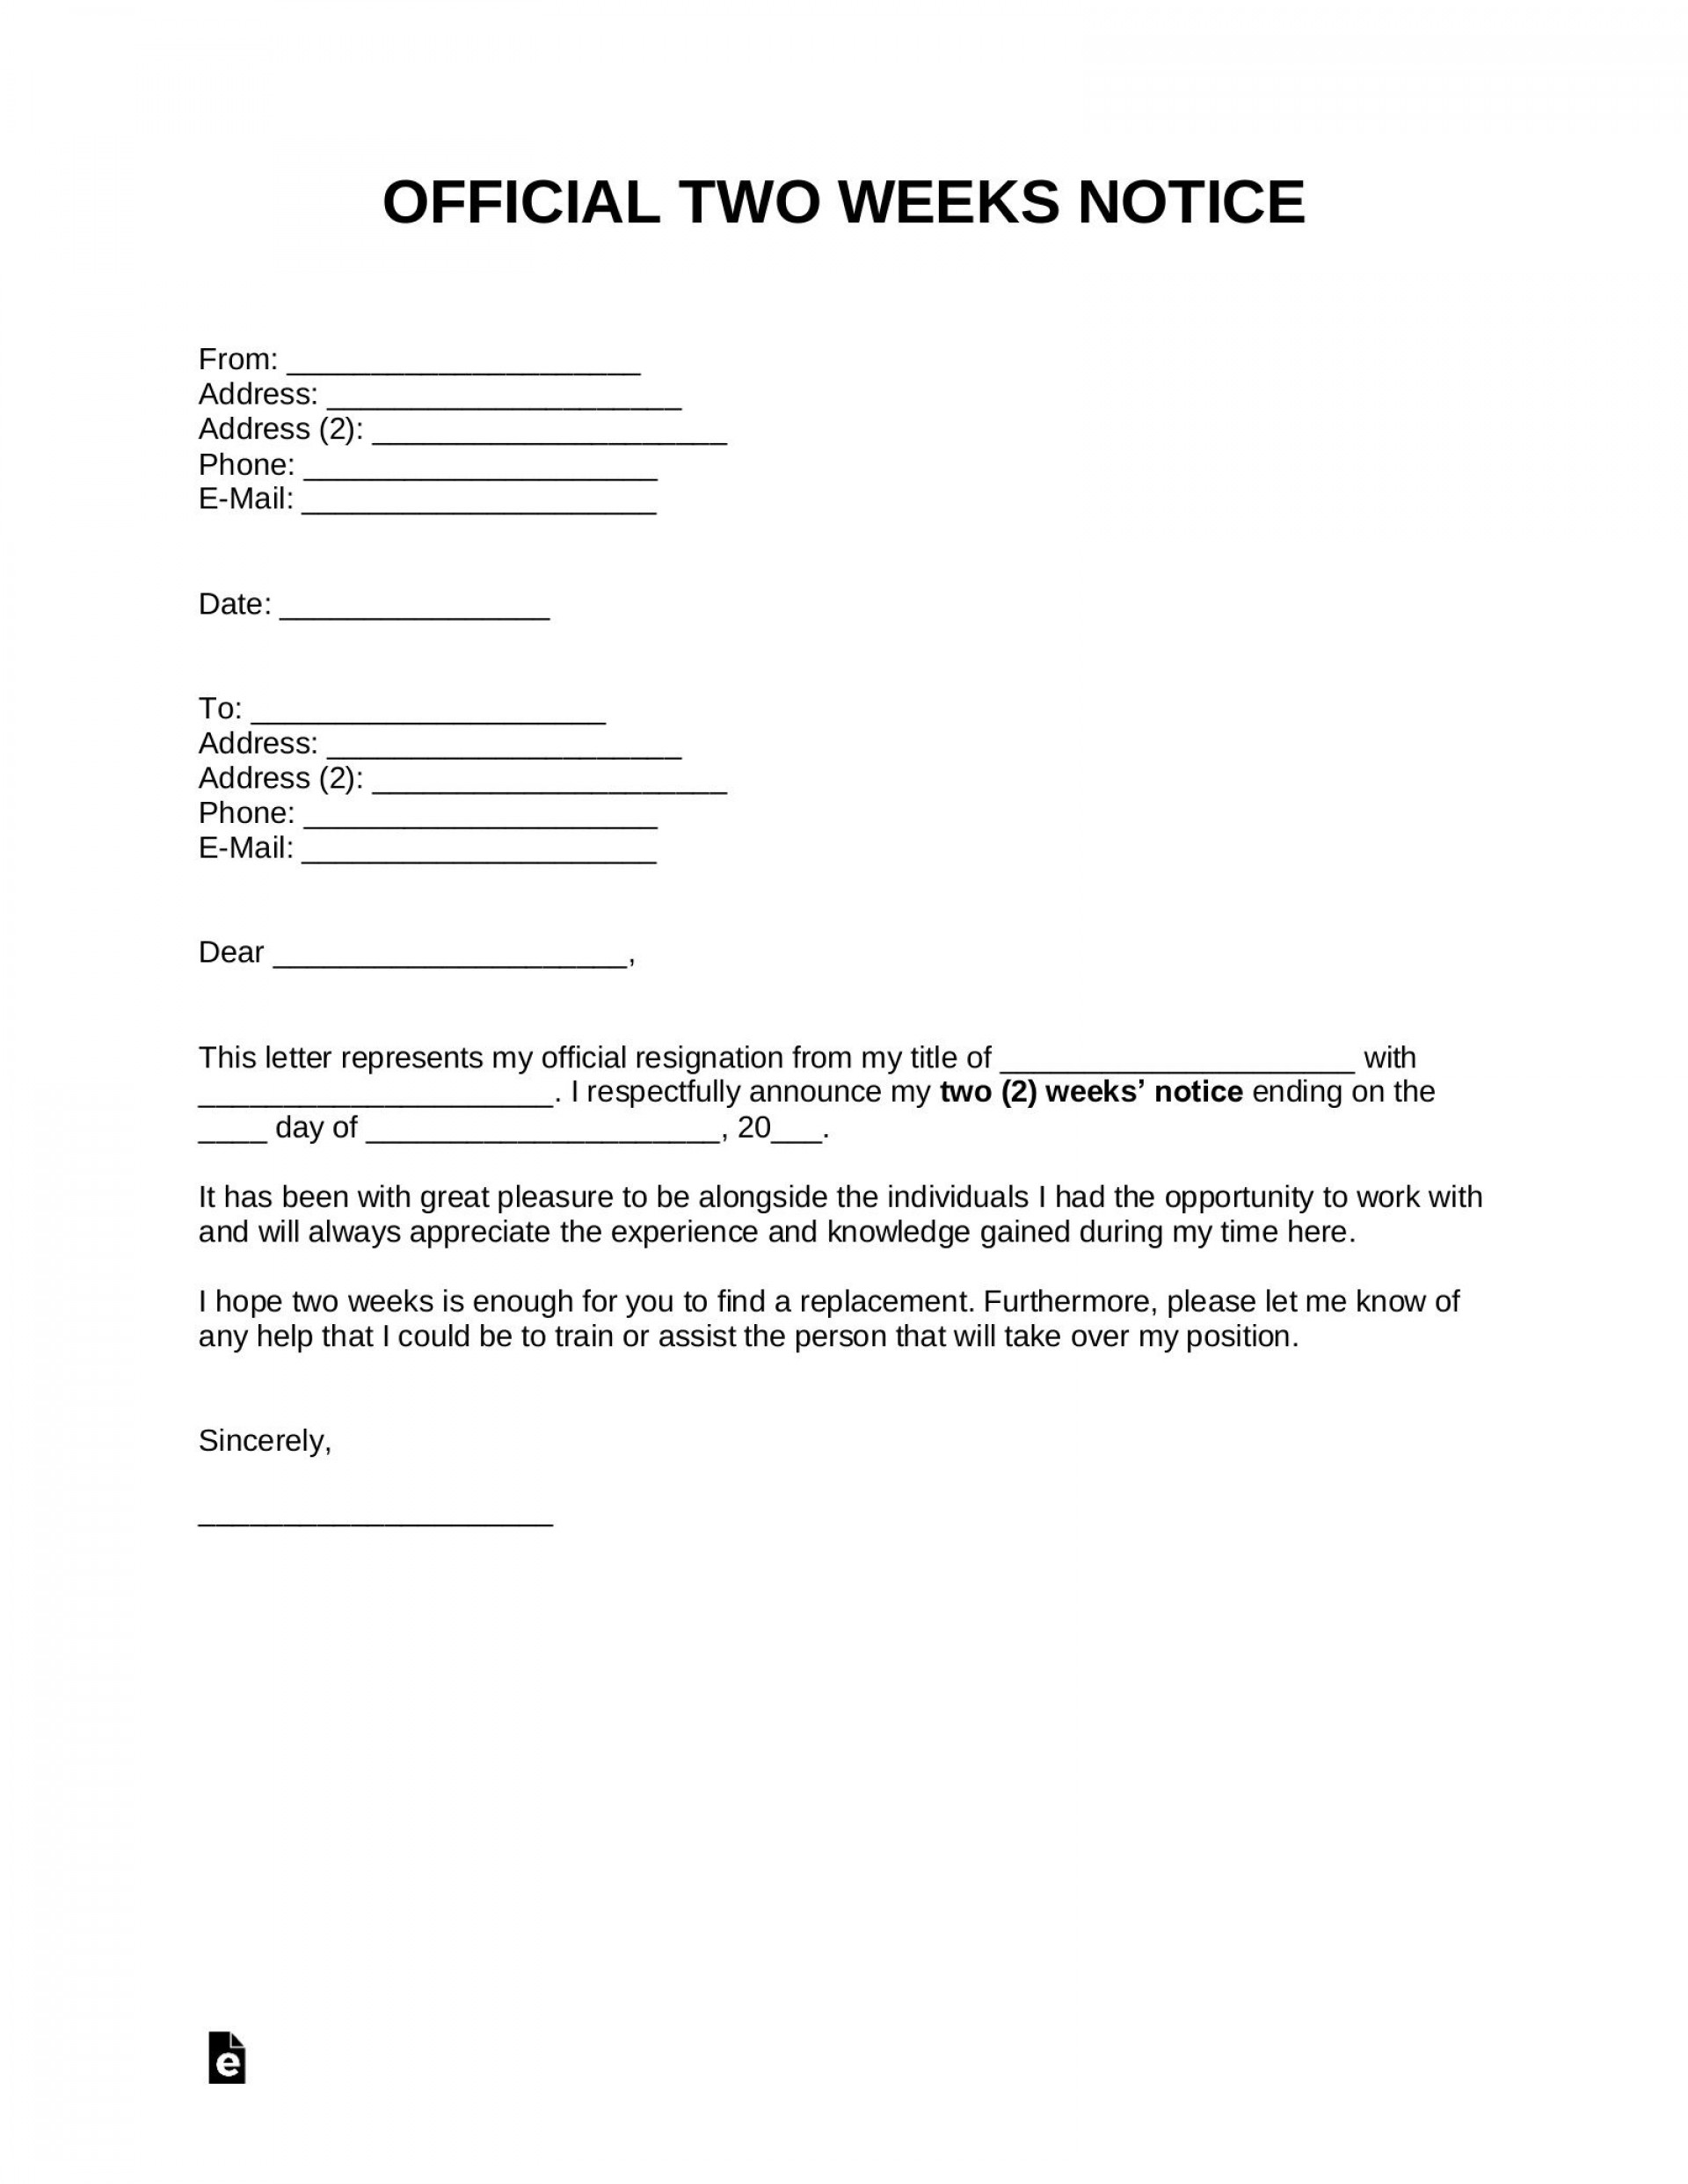 008 Excellent Two Week Notice Letter Template Image  2 Google Doc Word Simple1920